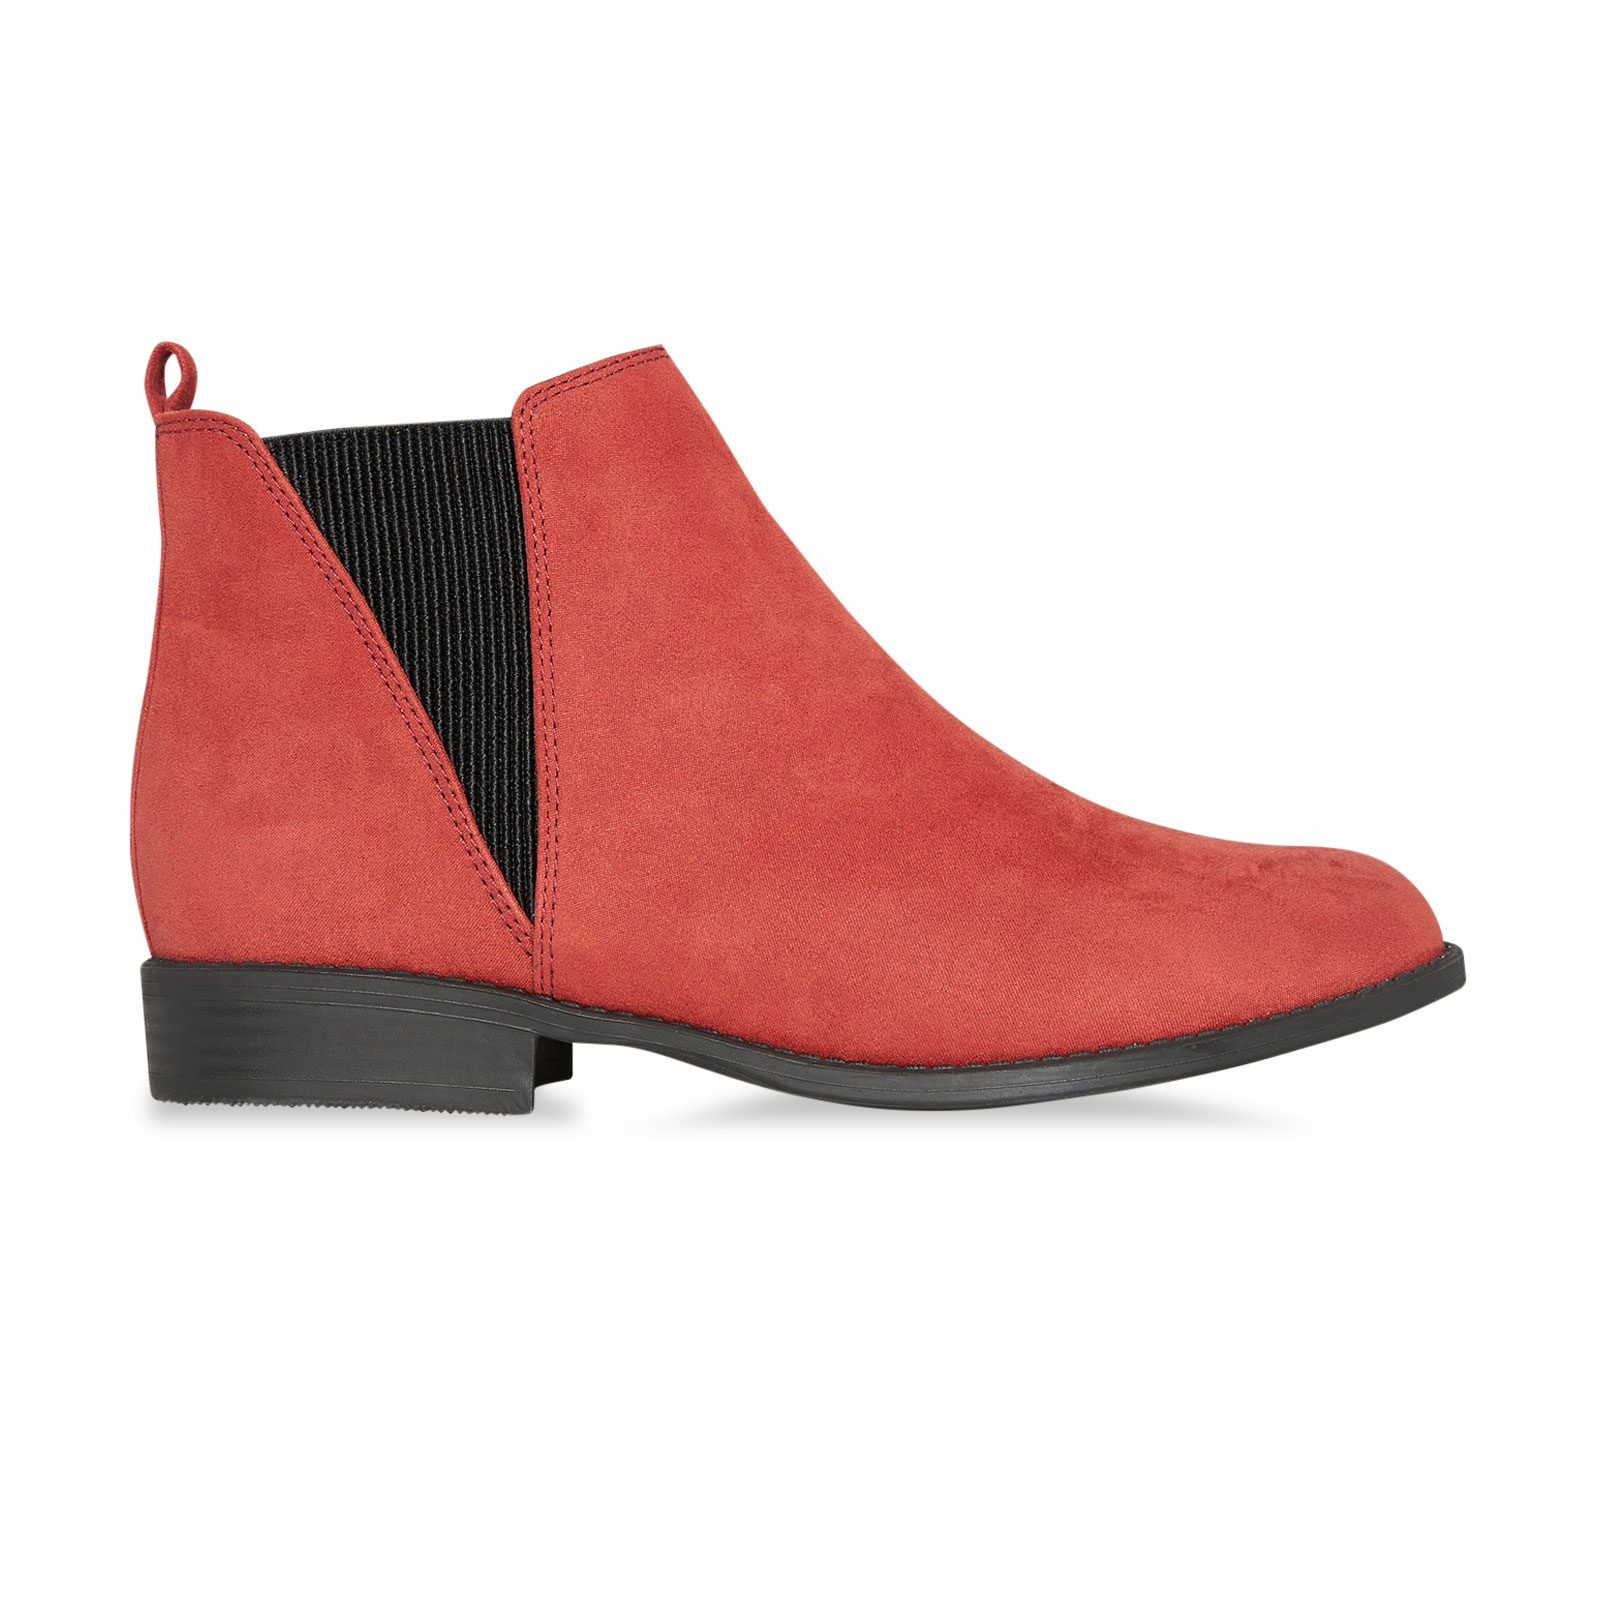 Ladies-Womens-Chelsea-Dealer-Boots-Suede-Ankle-Slip-On-Low-Heel-Shoes-Size-3-8 thumbnail 6